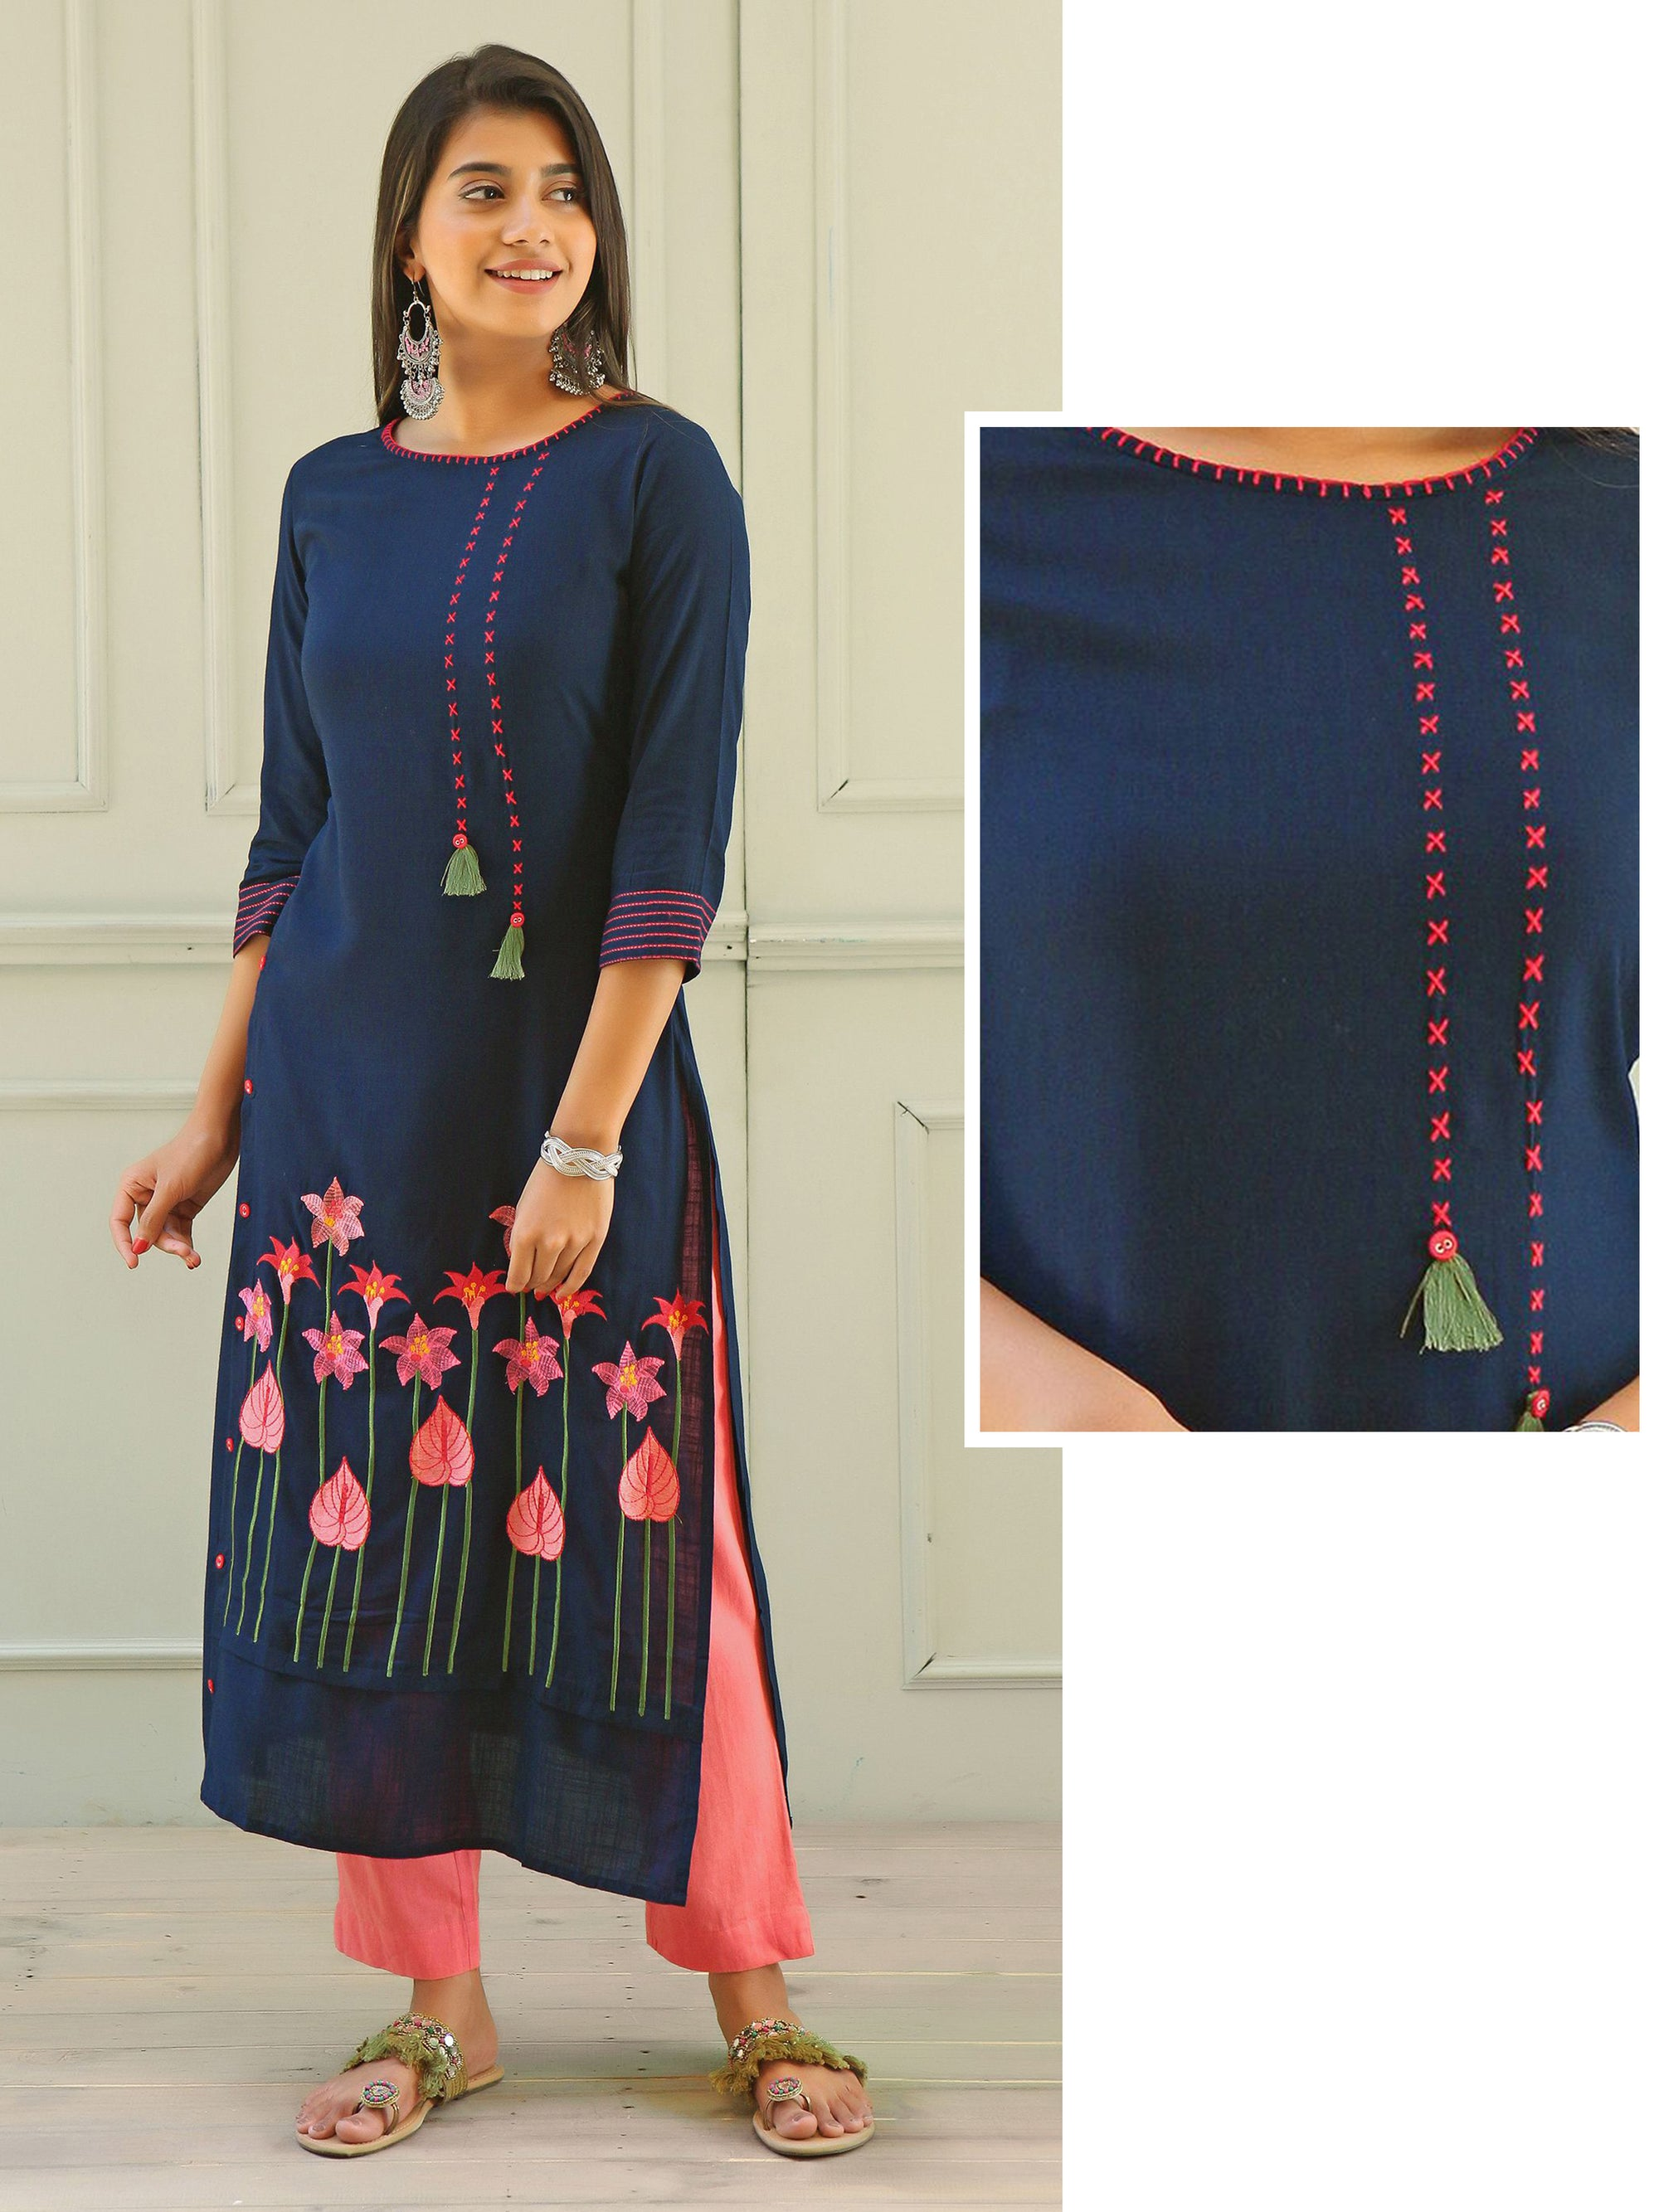 Floral Embroidered &Tassel and Button highlighted Cotton Kurti - Navy Blue